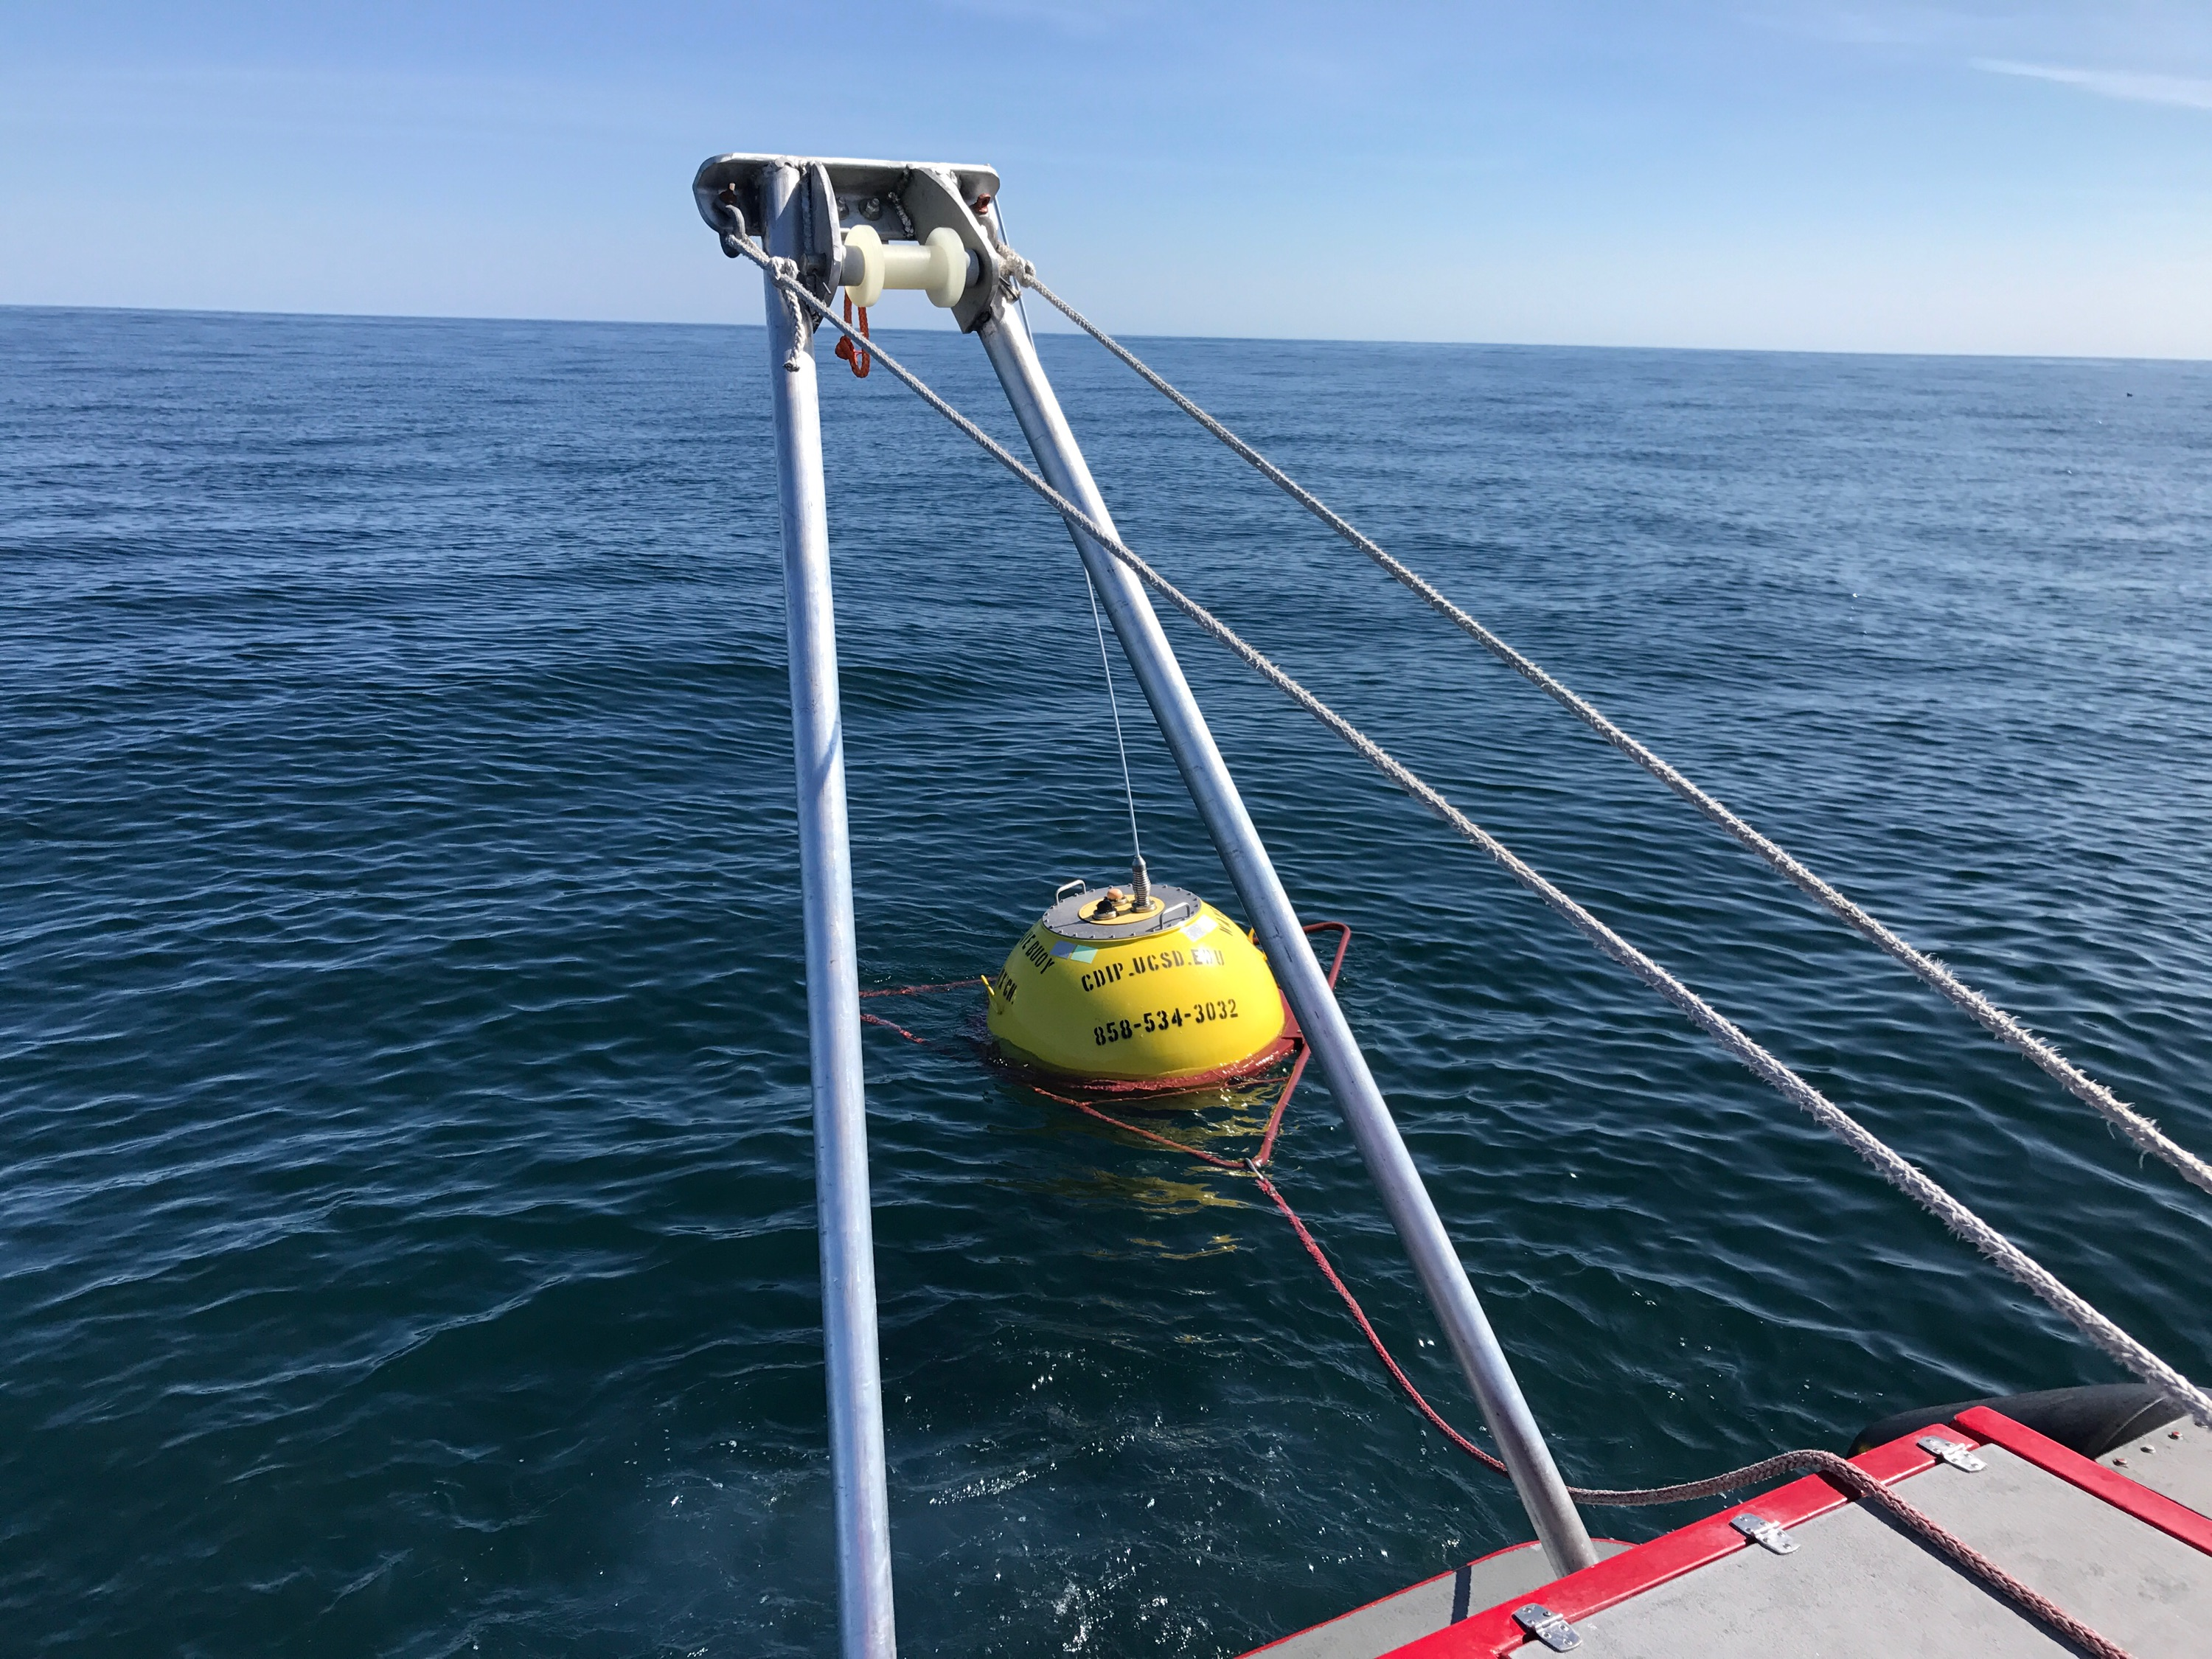 Deploying buoy using A frame on back of boat